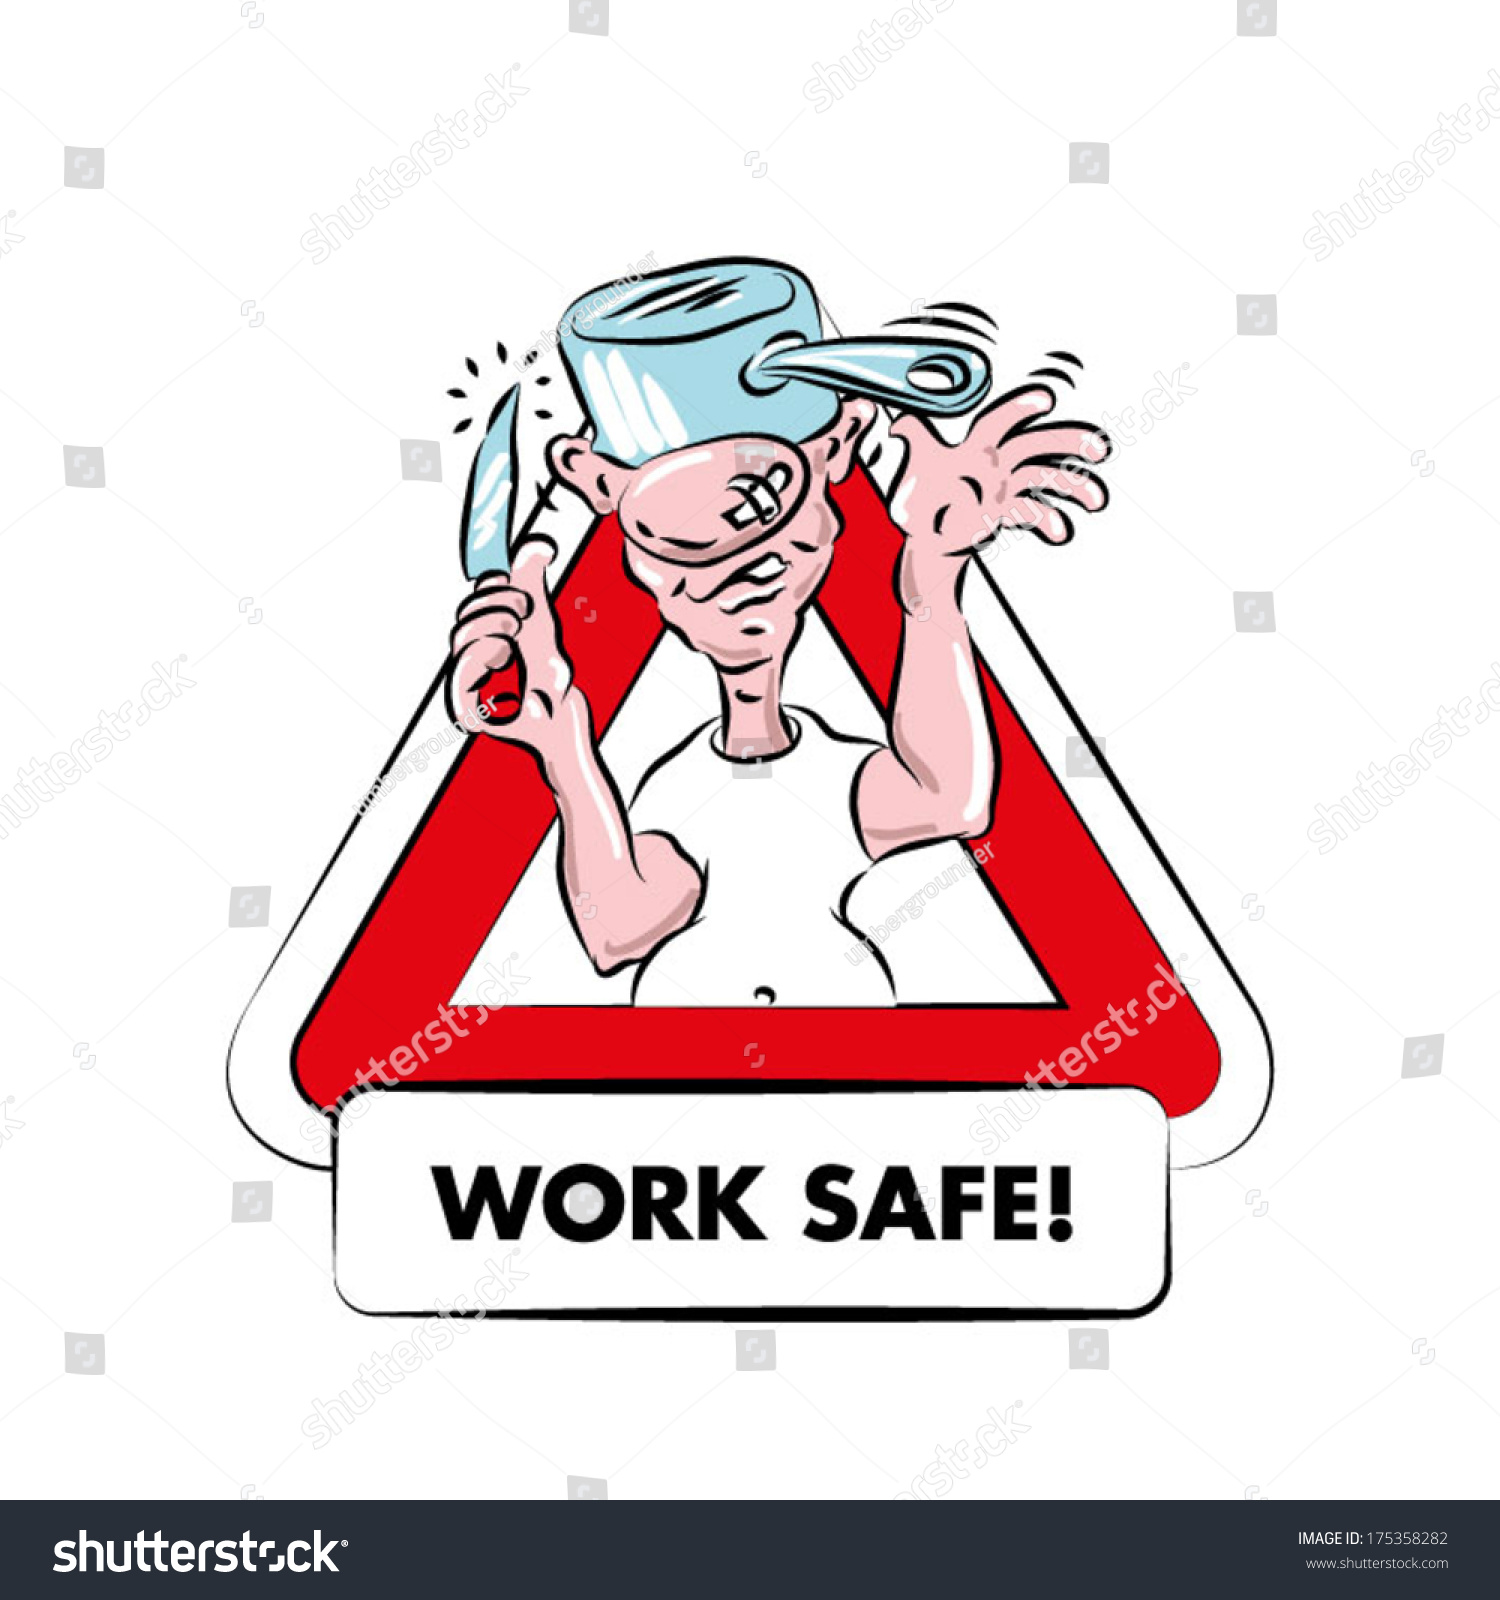 Cartoon Warning Sign Kitchen Safety Funny Stock Photo (Photo, Vector ...